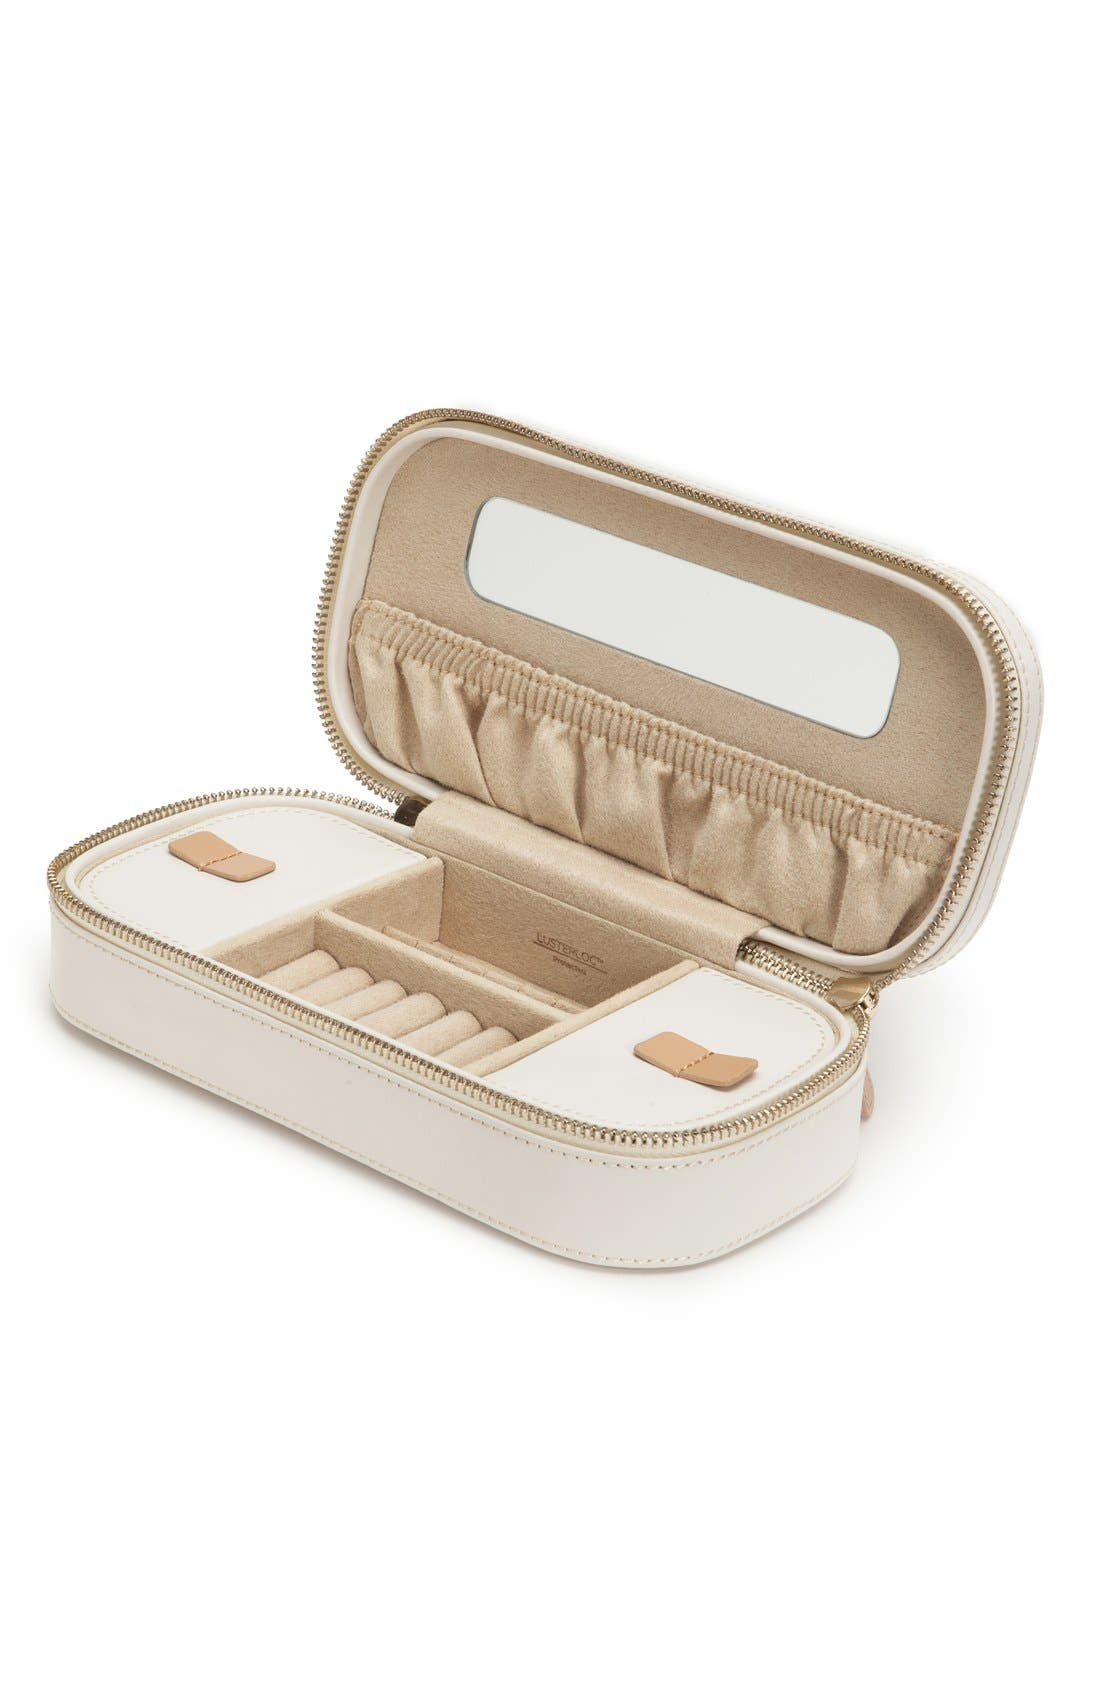 'Chloe' Zip Jewelry Case,                             Main thumbnail 1, color,                             Cream